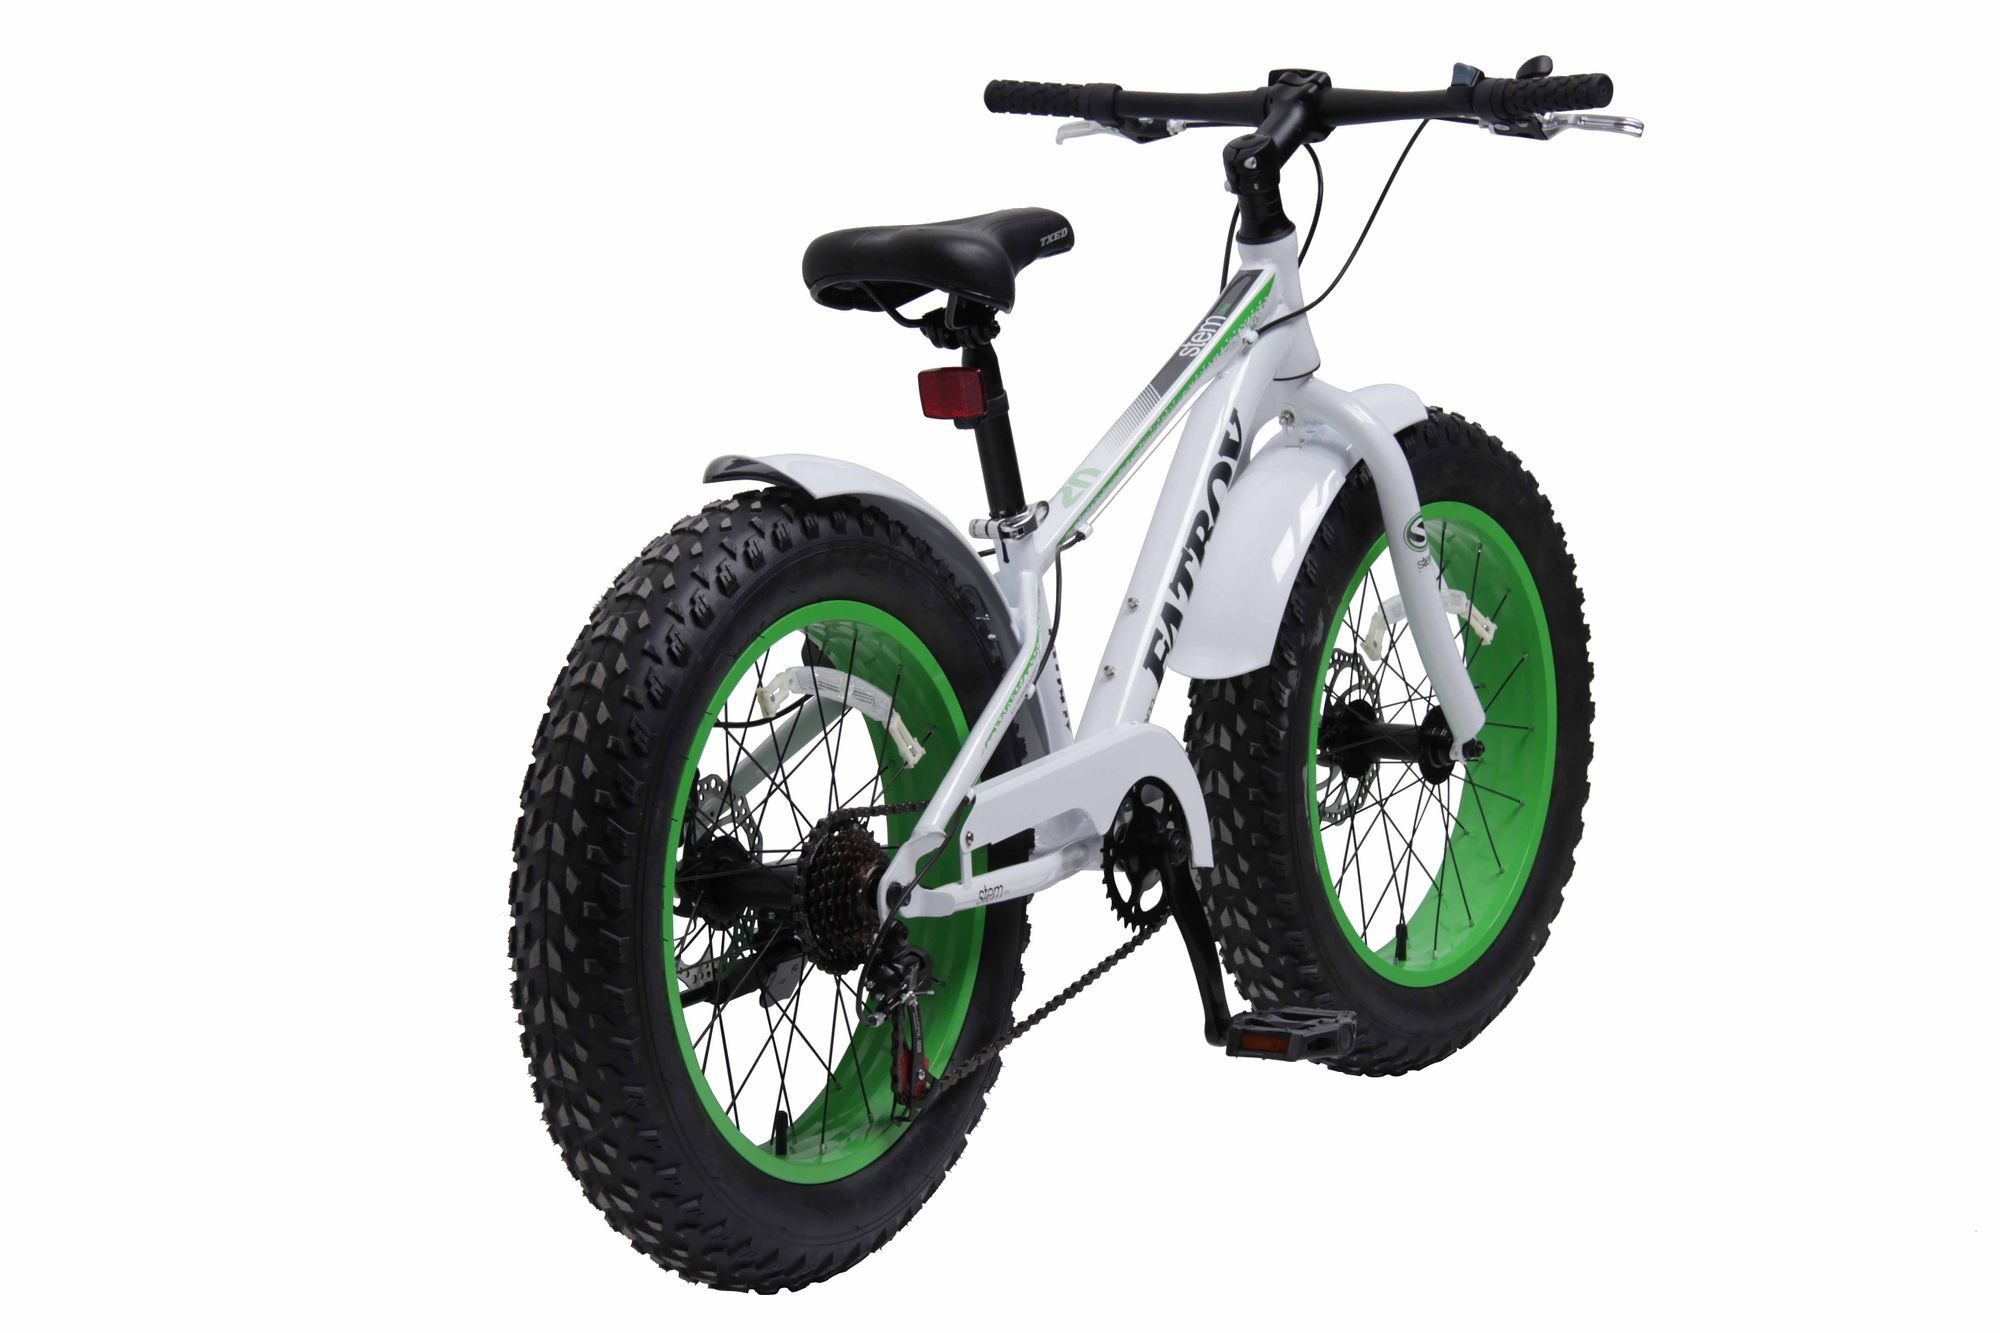 kinderfahrrad 20 zoll stem kinder fatbike fahrrad wei gr n 7 gang shimano ebay. Black Bedroom Furniture Sets. Home Design Ideas